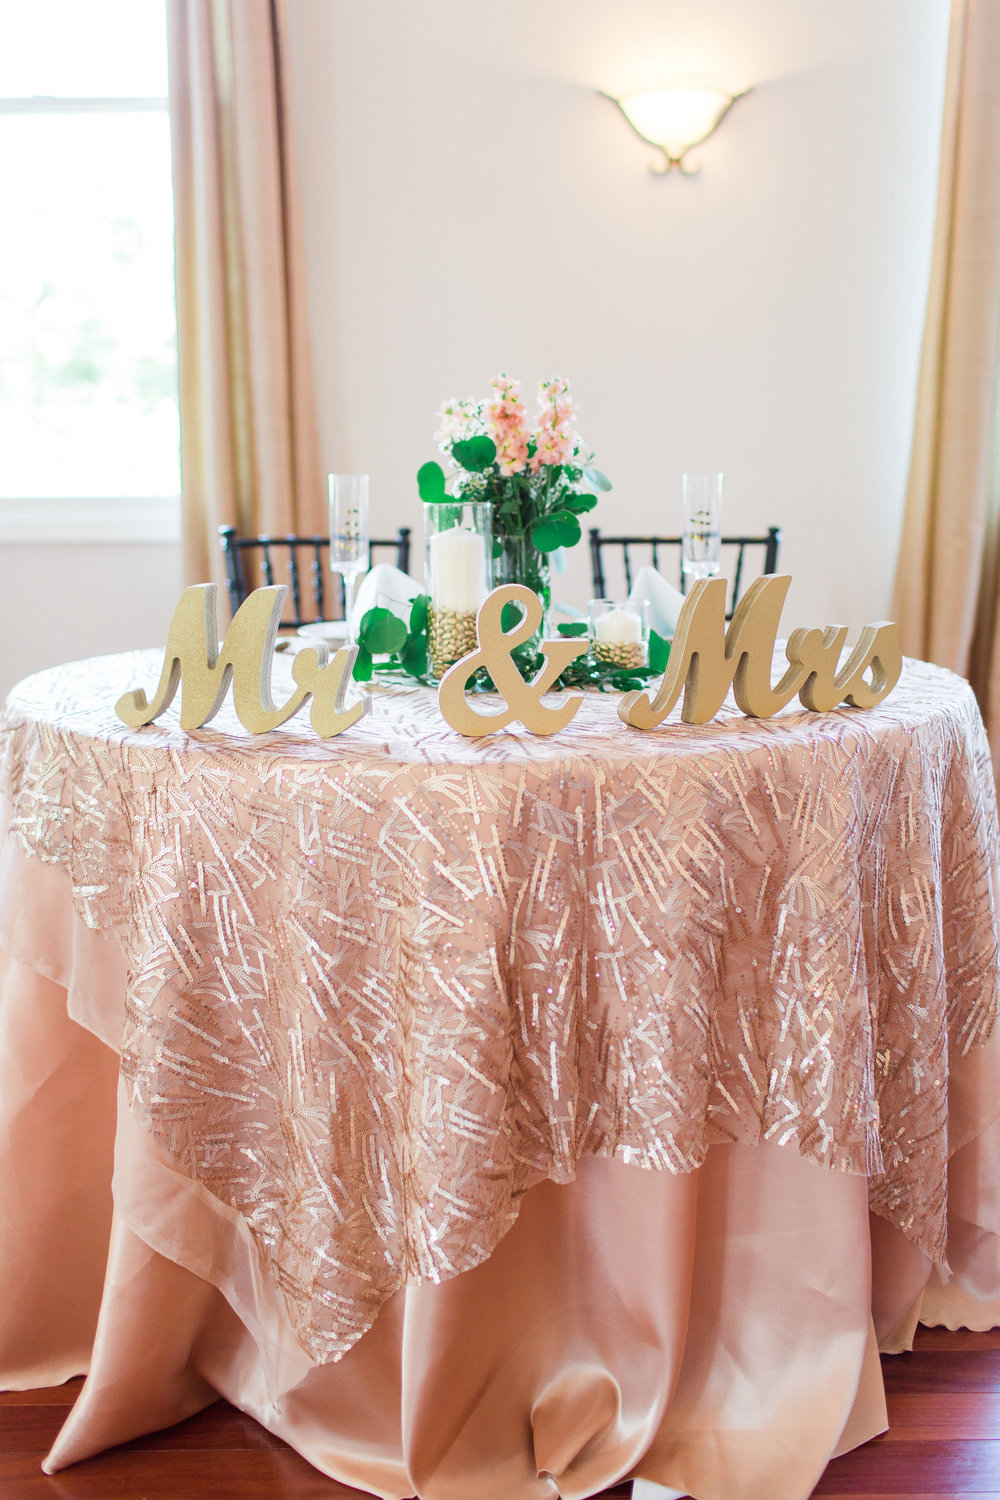 Plantation-On-Sunnybrook-Wedding-Photos_Roanoke-Wedding-Photographer_Jessica-Gre-0027.jpg